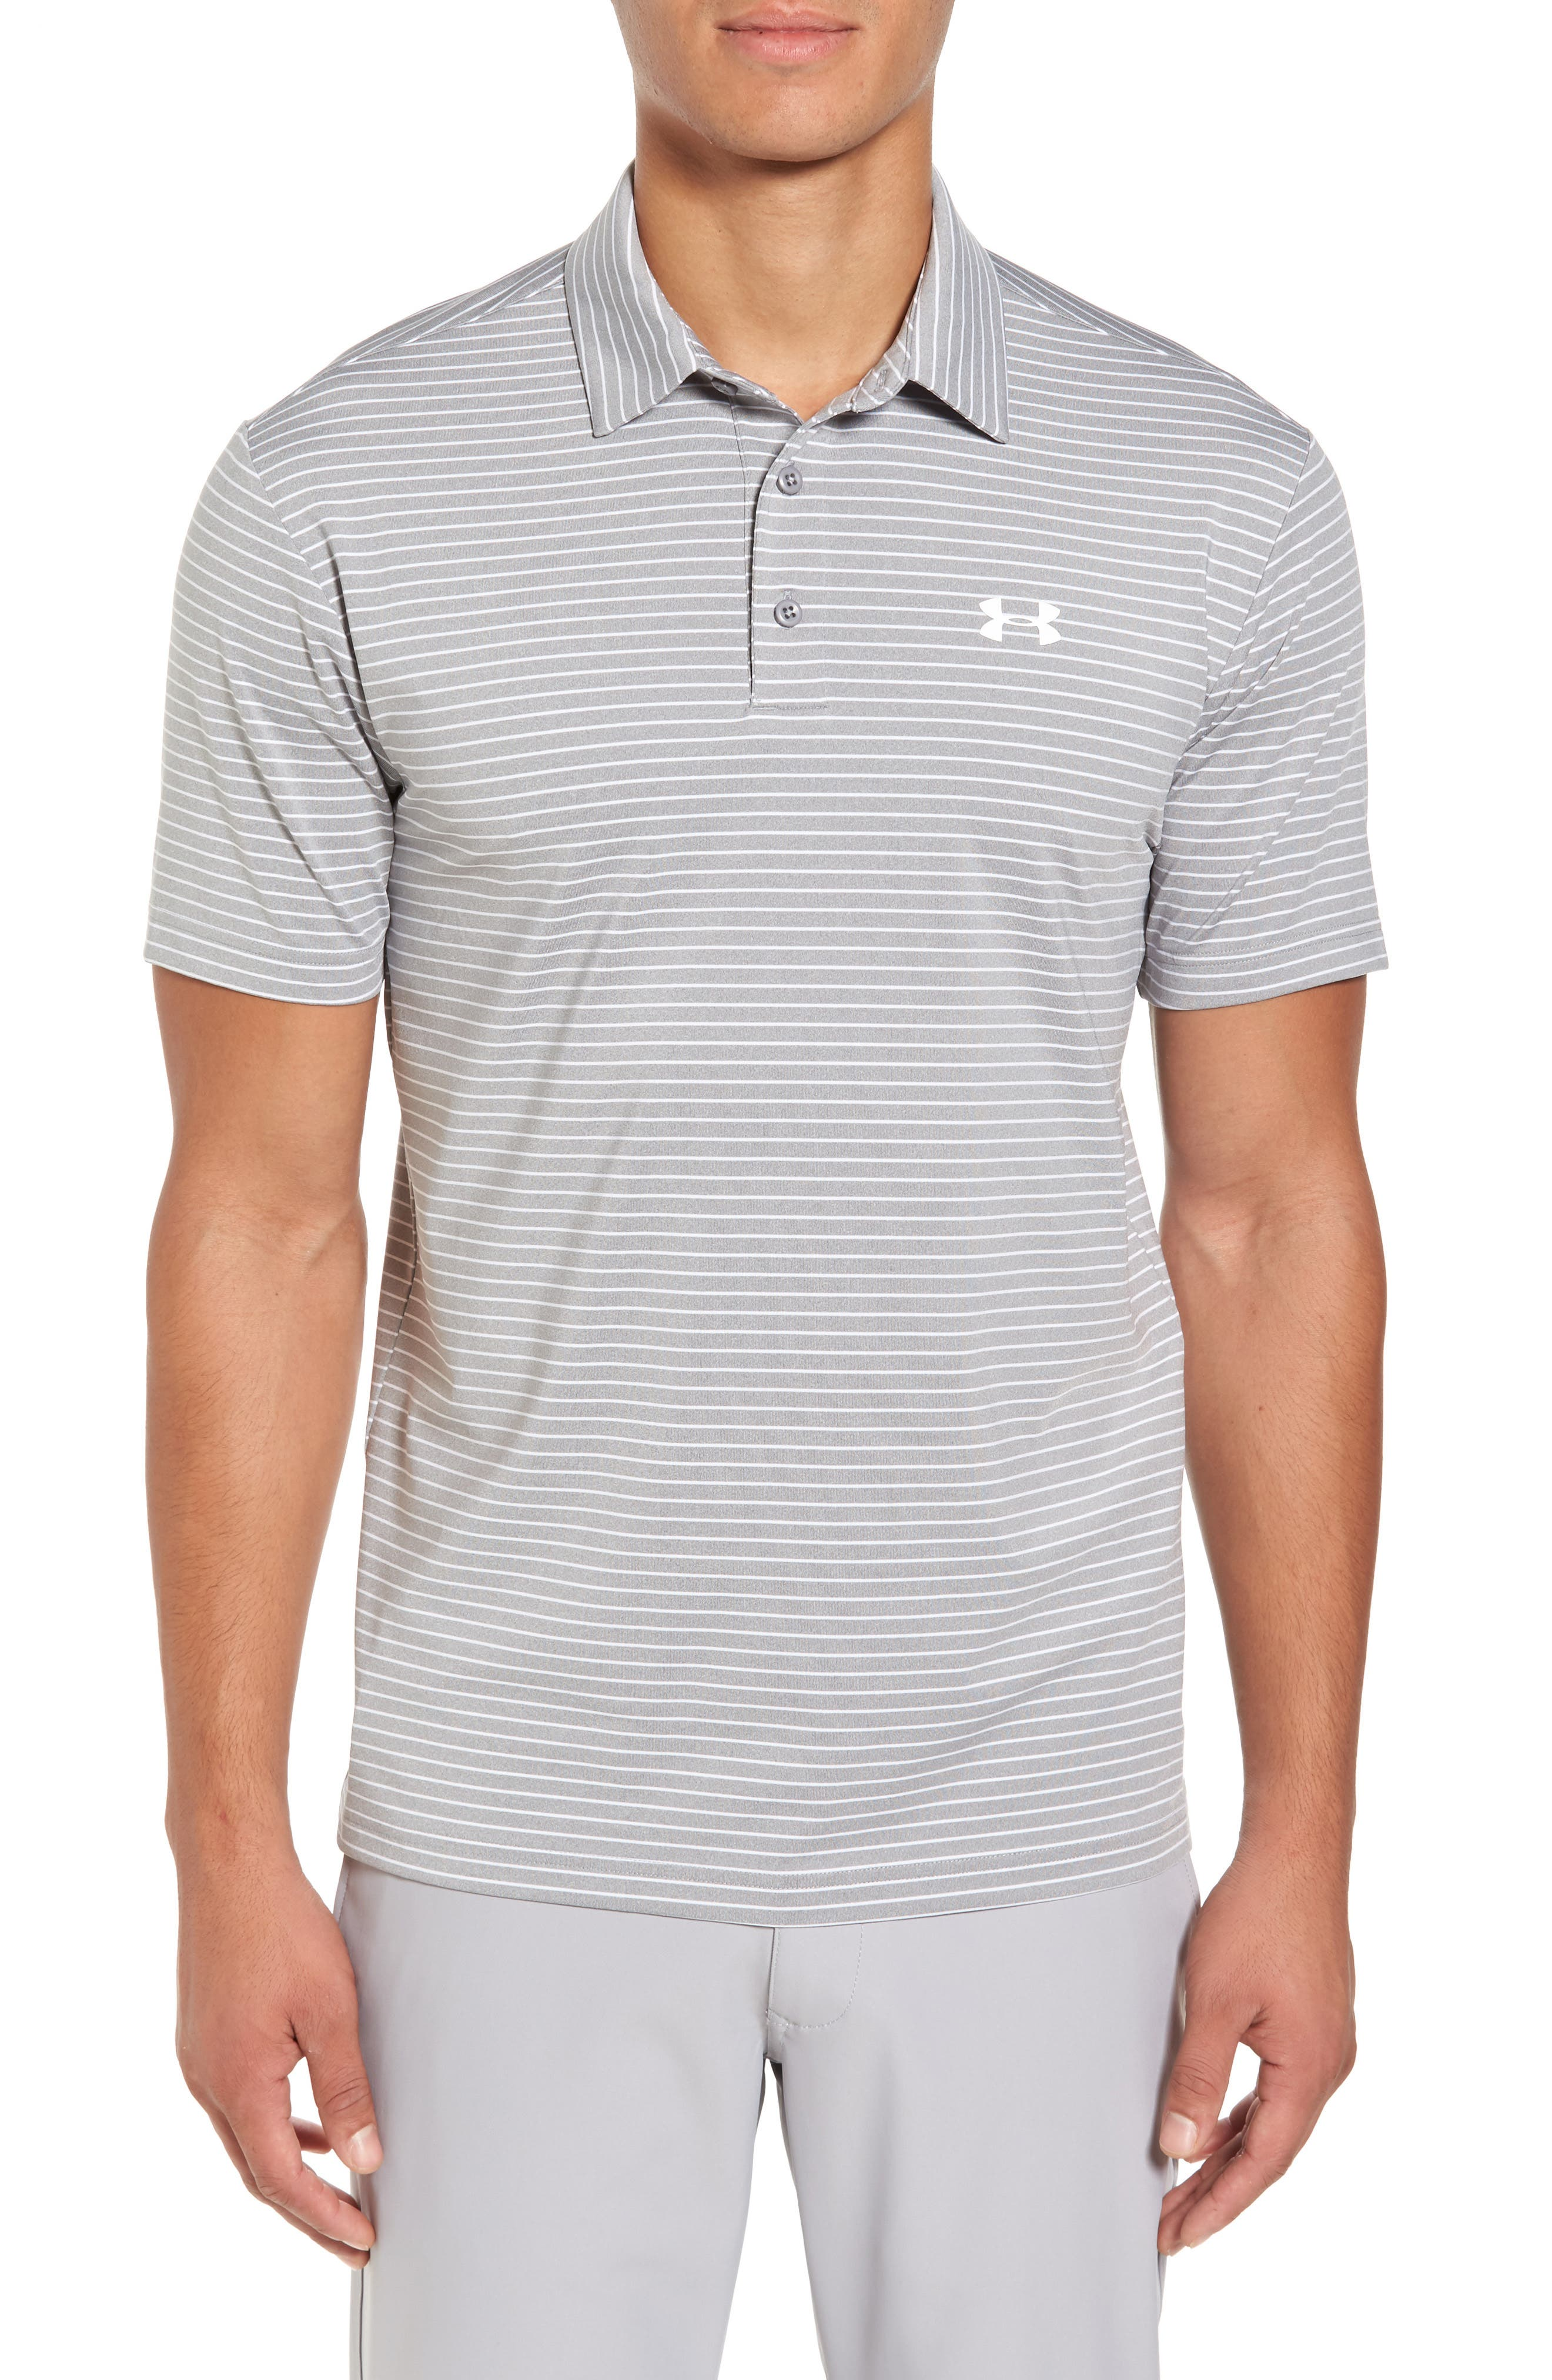 'Playoff' Loose Fit Short Sleeve Polo,                         Main,                         color, TRUE GREY HEATHER/ WHT STRIPE